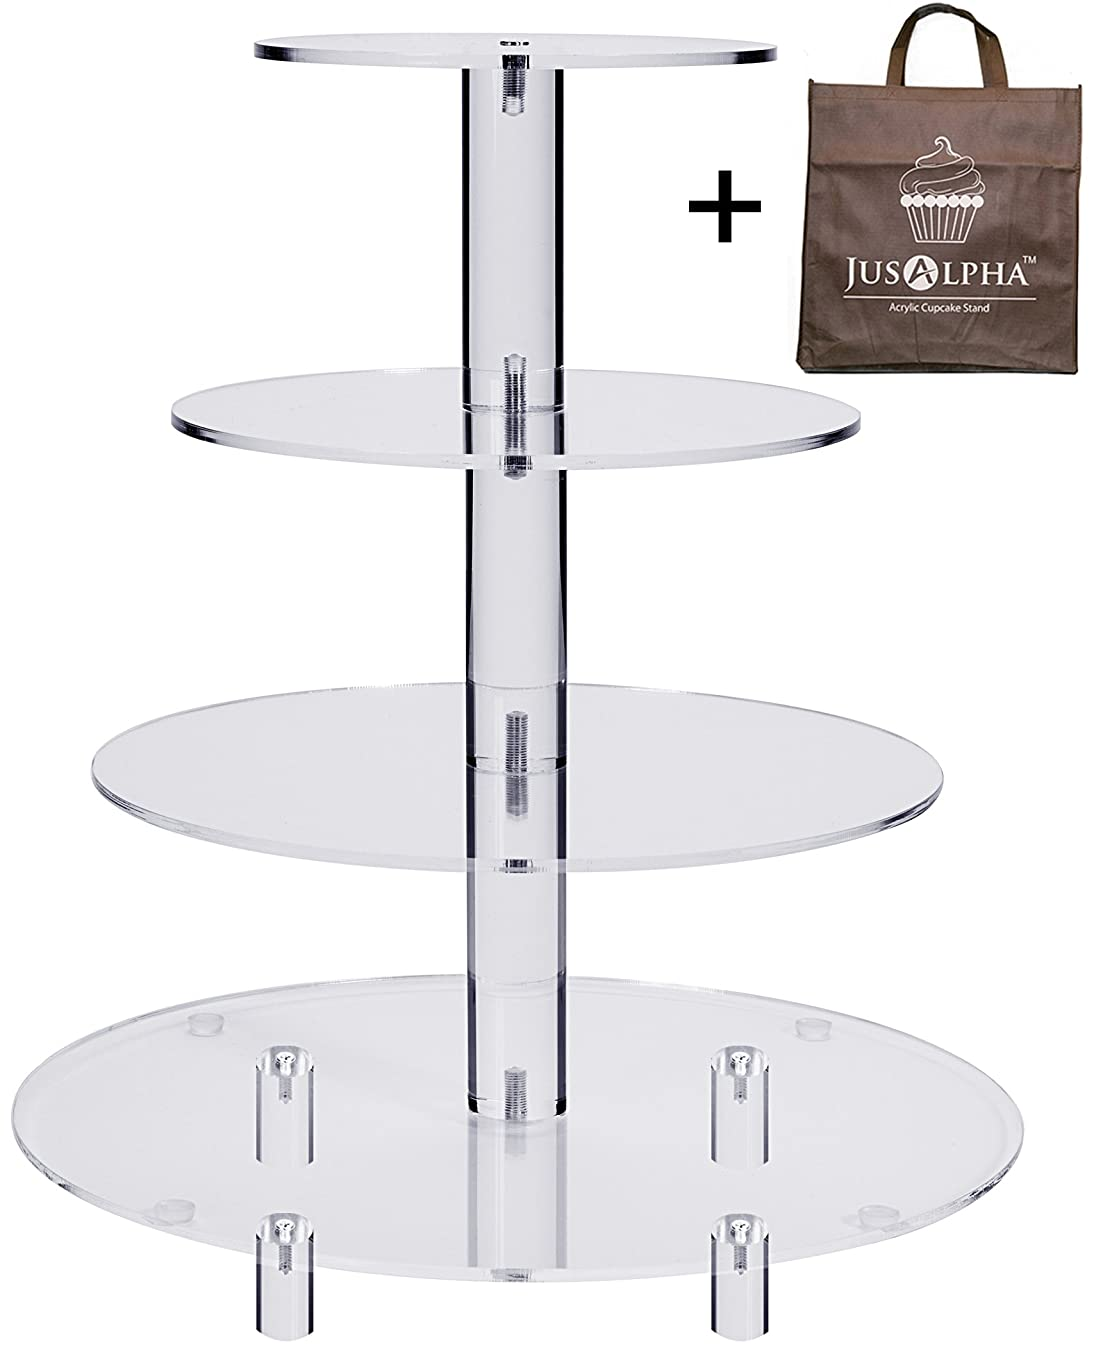 Jusalpha 4 Tier Acrylic Glass Round Cake Stand-cupcake Stand- Dessert Stand-tea Party Serving Platter for Wedding Party With Rod Feet (4RF)